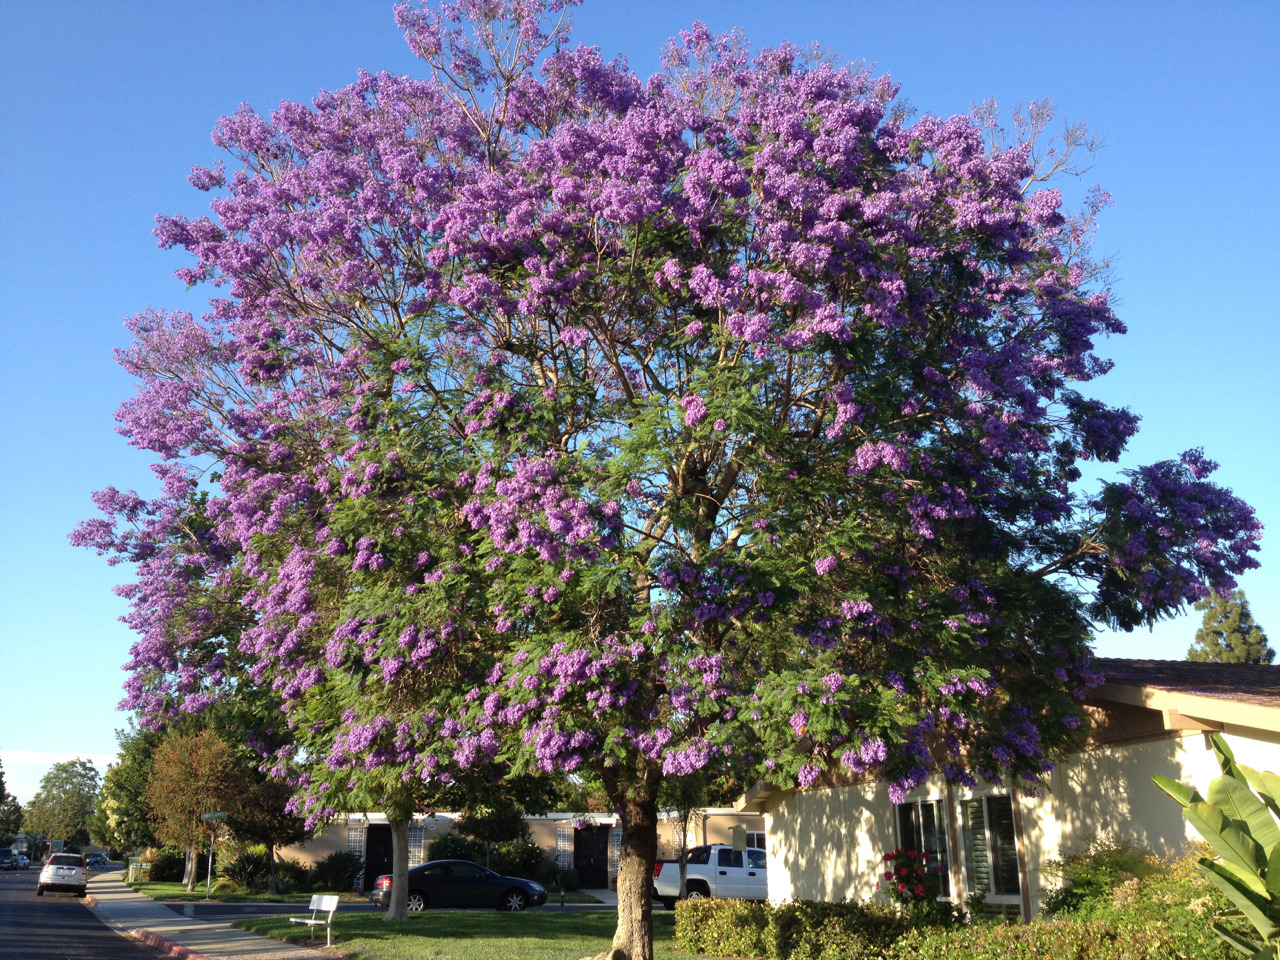 Life is too short not to stop, back up and take a picture of a spectacular jacaranda.